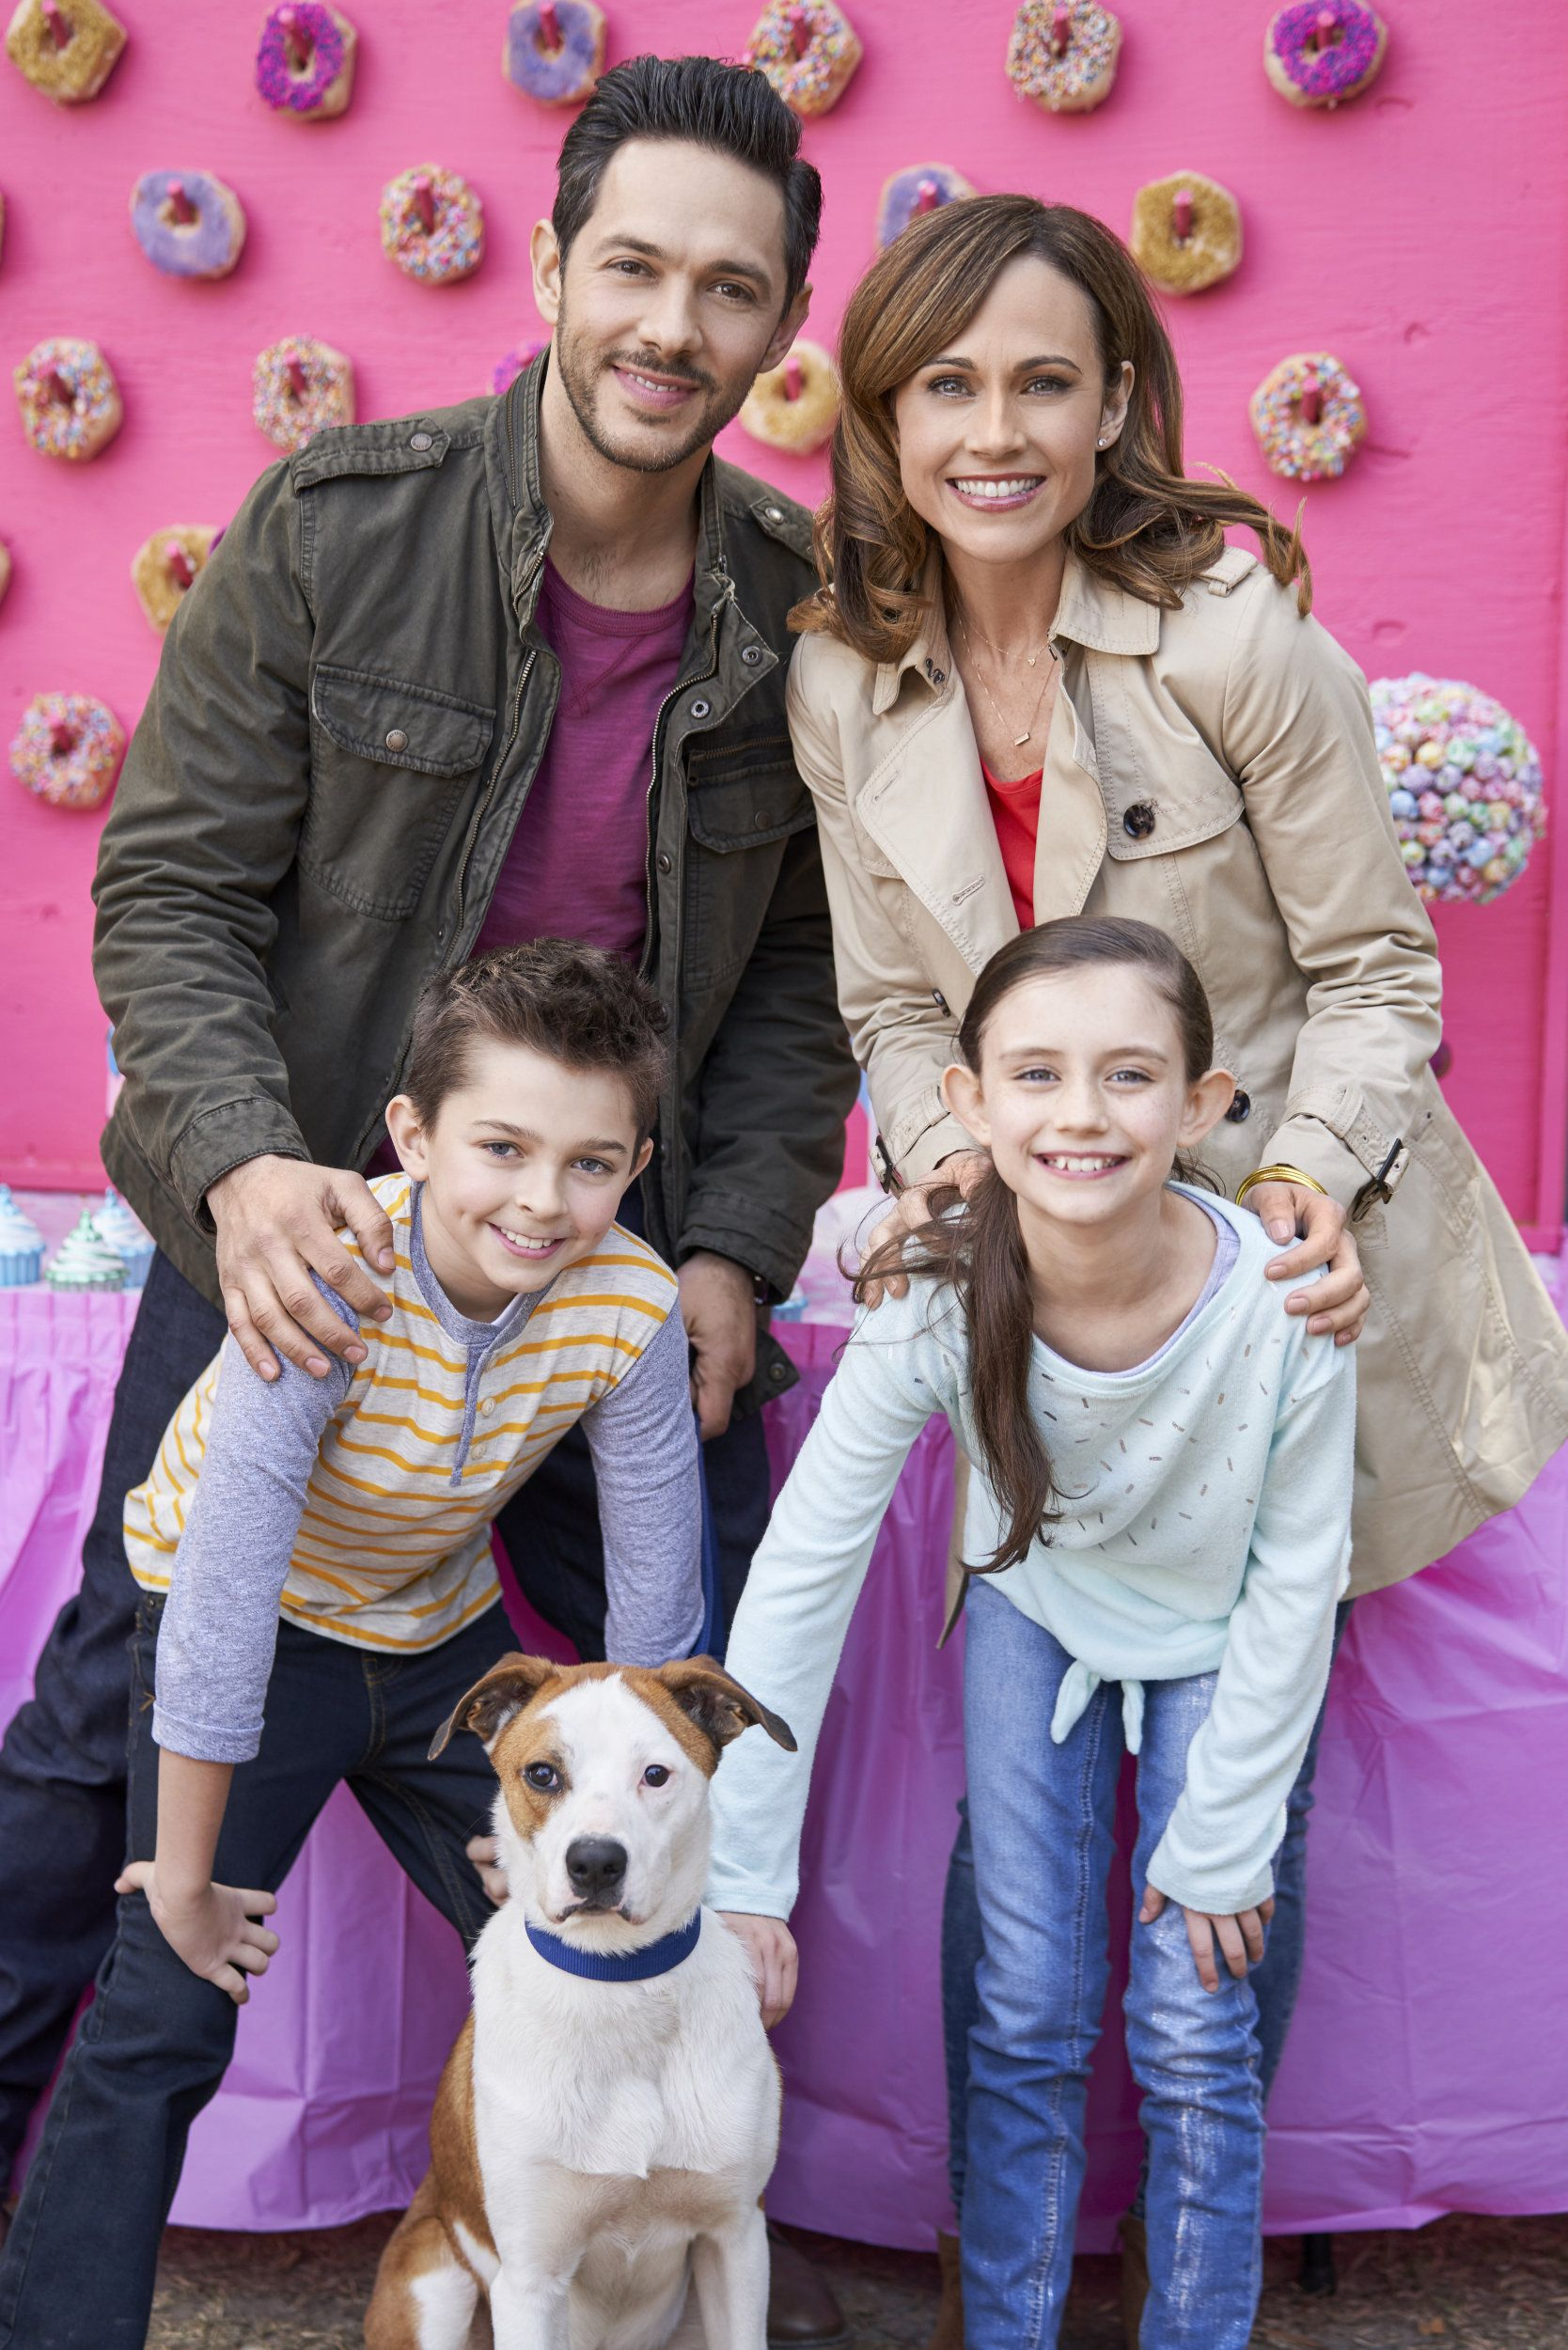 Find Out About The Cast Of The Hallmark Channel Original Movie